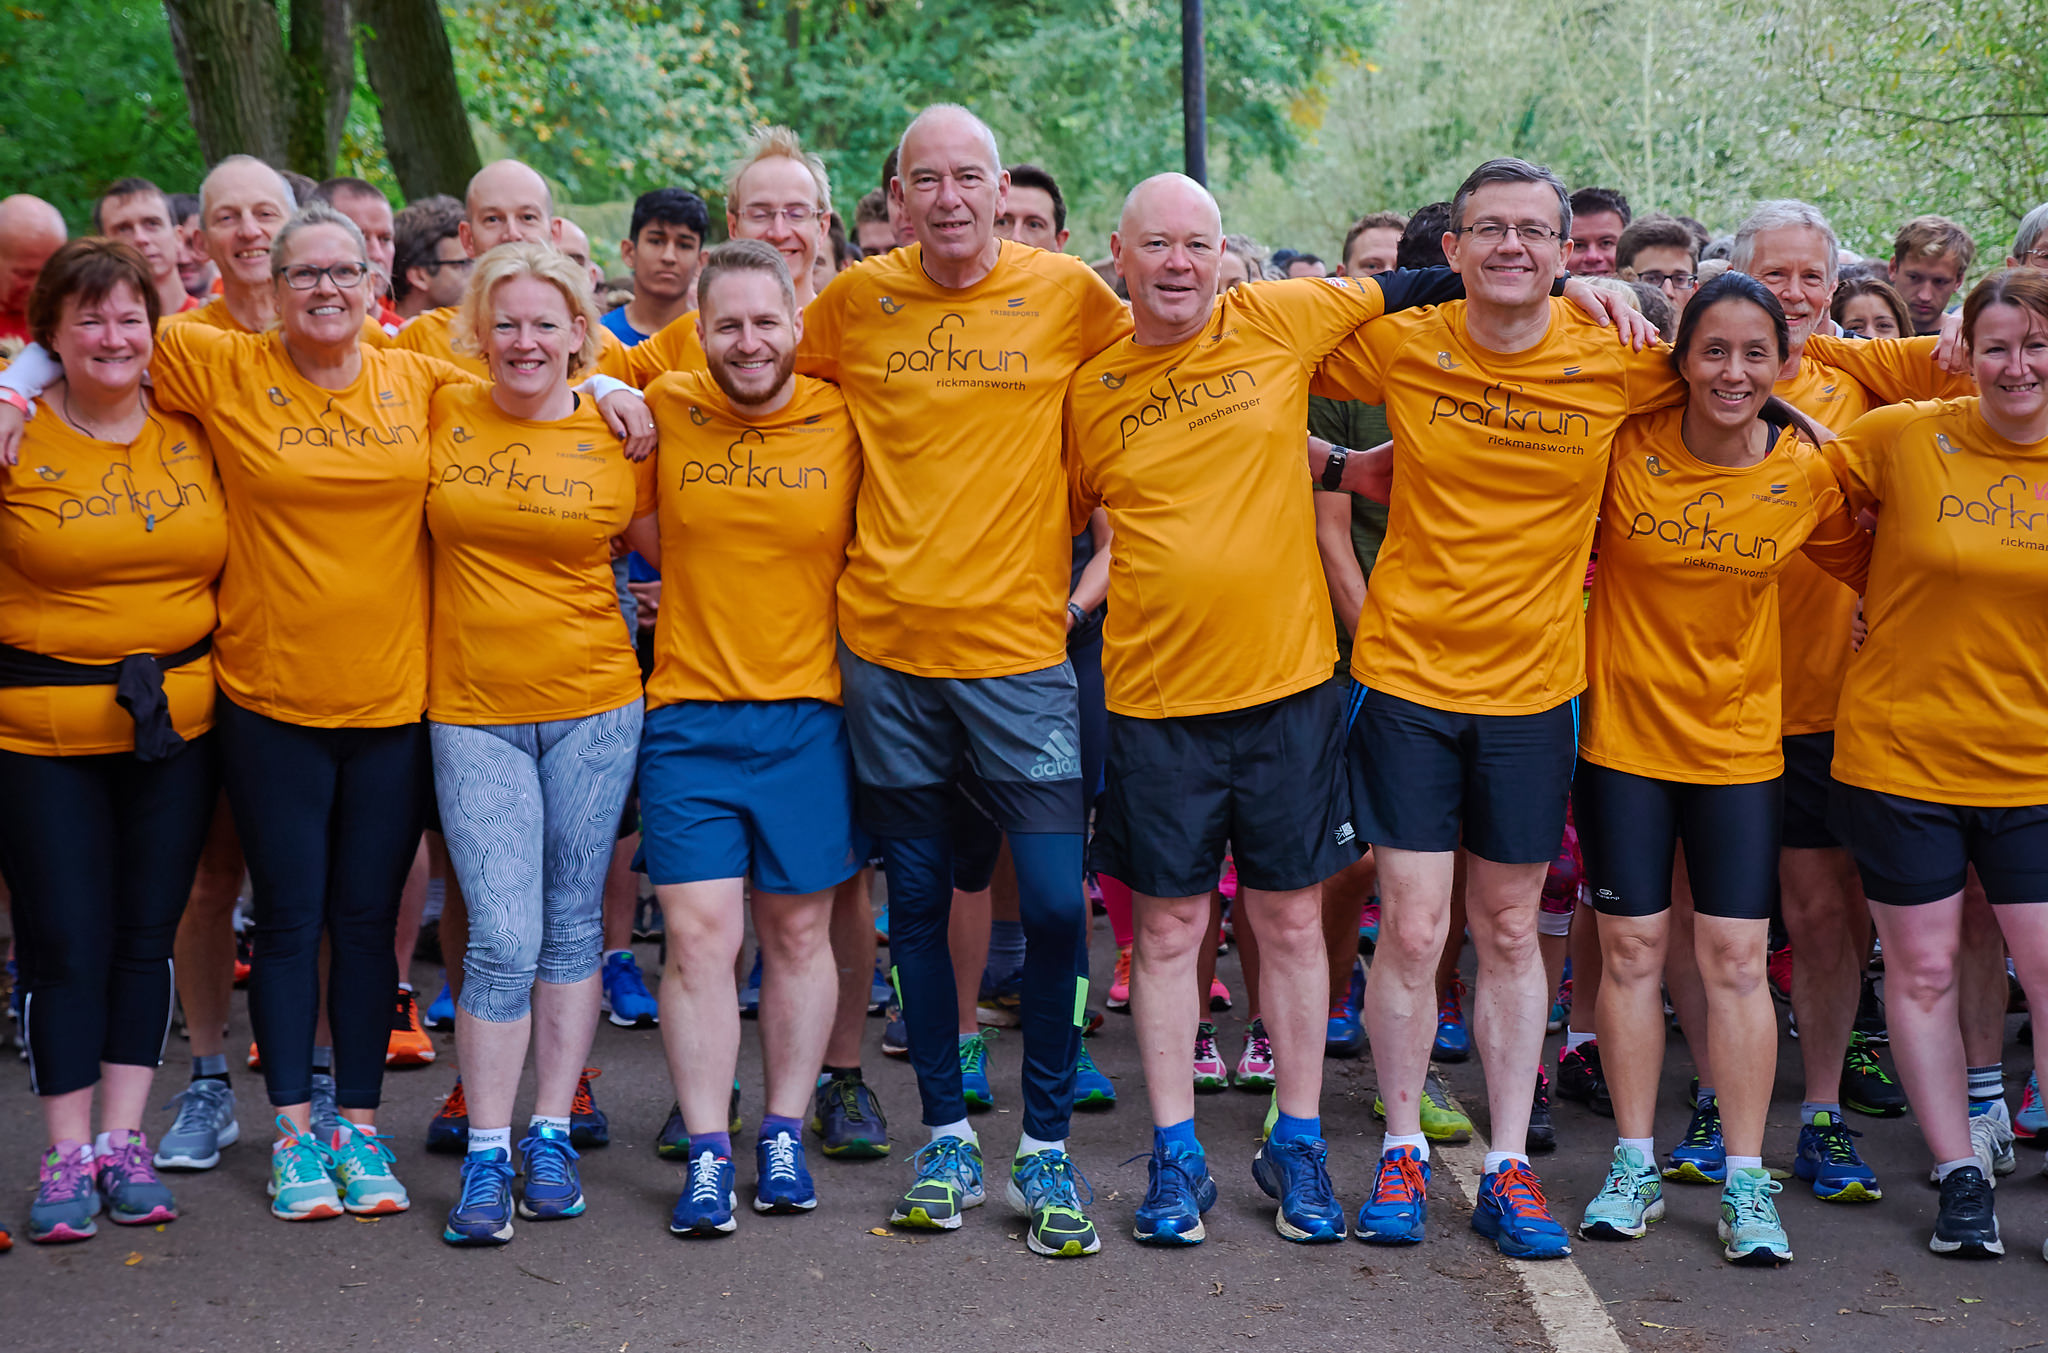 #TeamARUKparkrun supporters